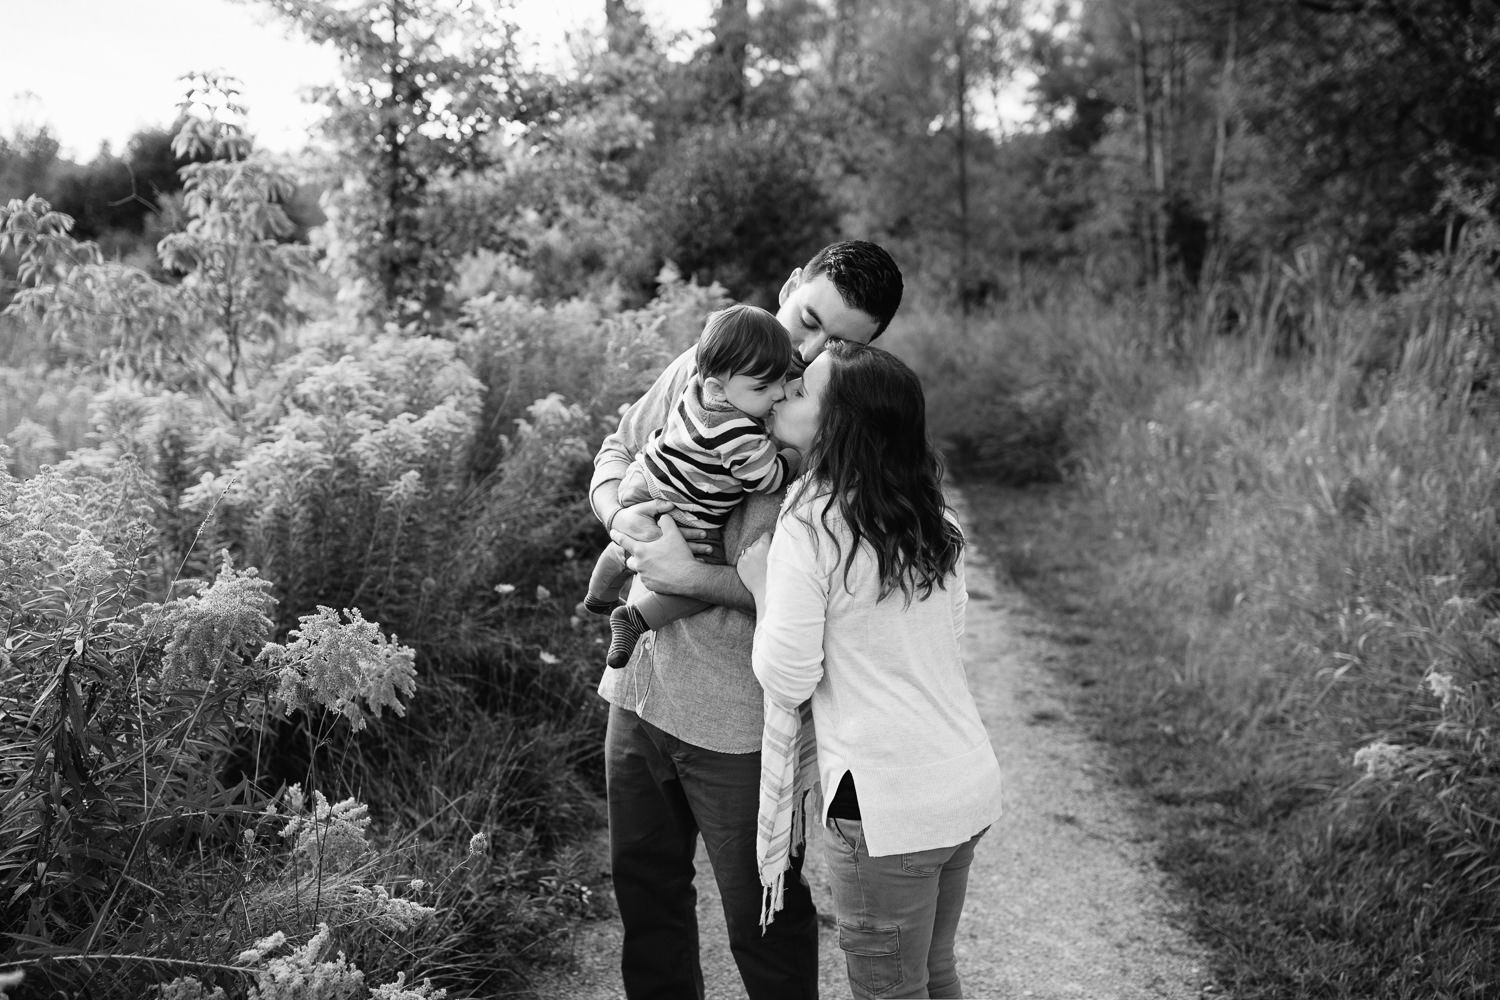 family of 3 standing on path in grassy field, dad holding 1 year old baby boy, mom standing next to husband, leaning over to kiss son - Markham LifestylePhotos